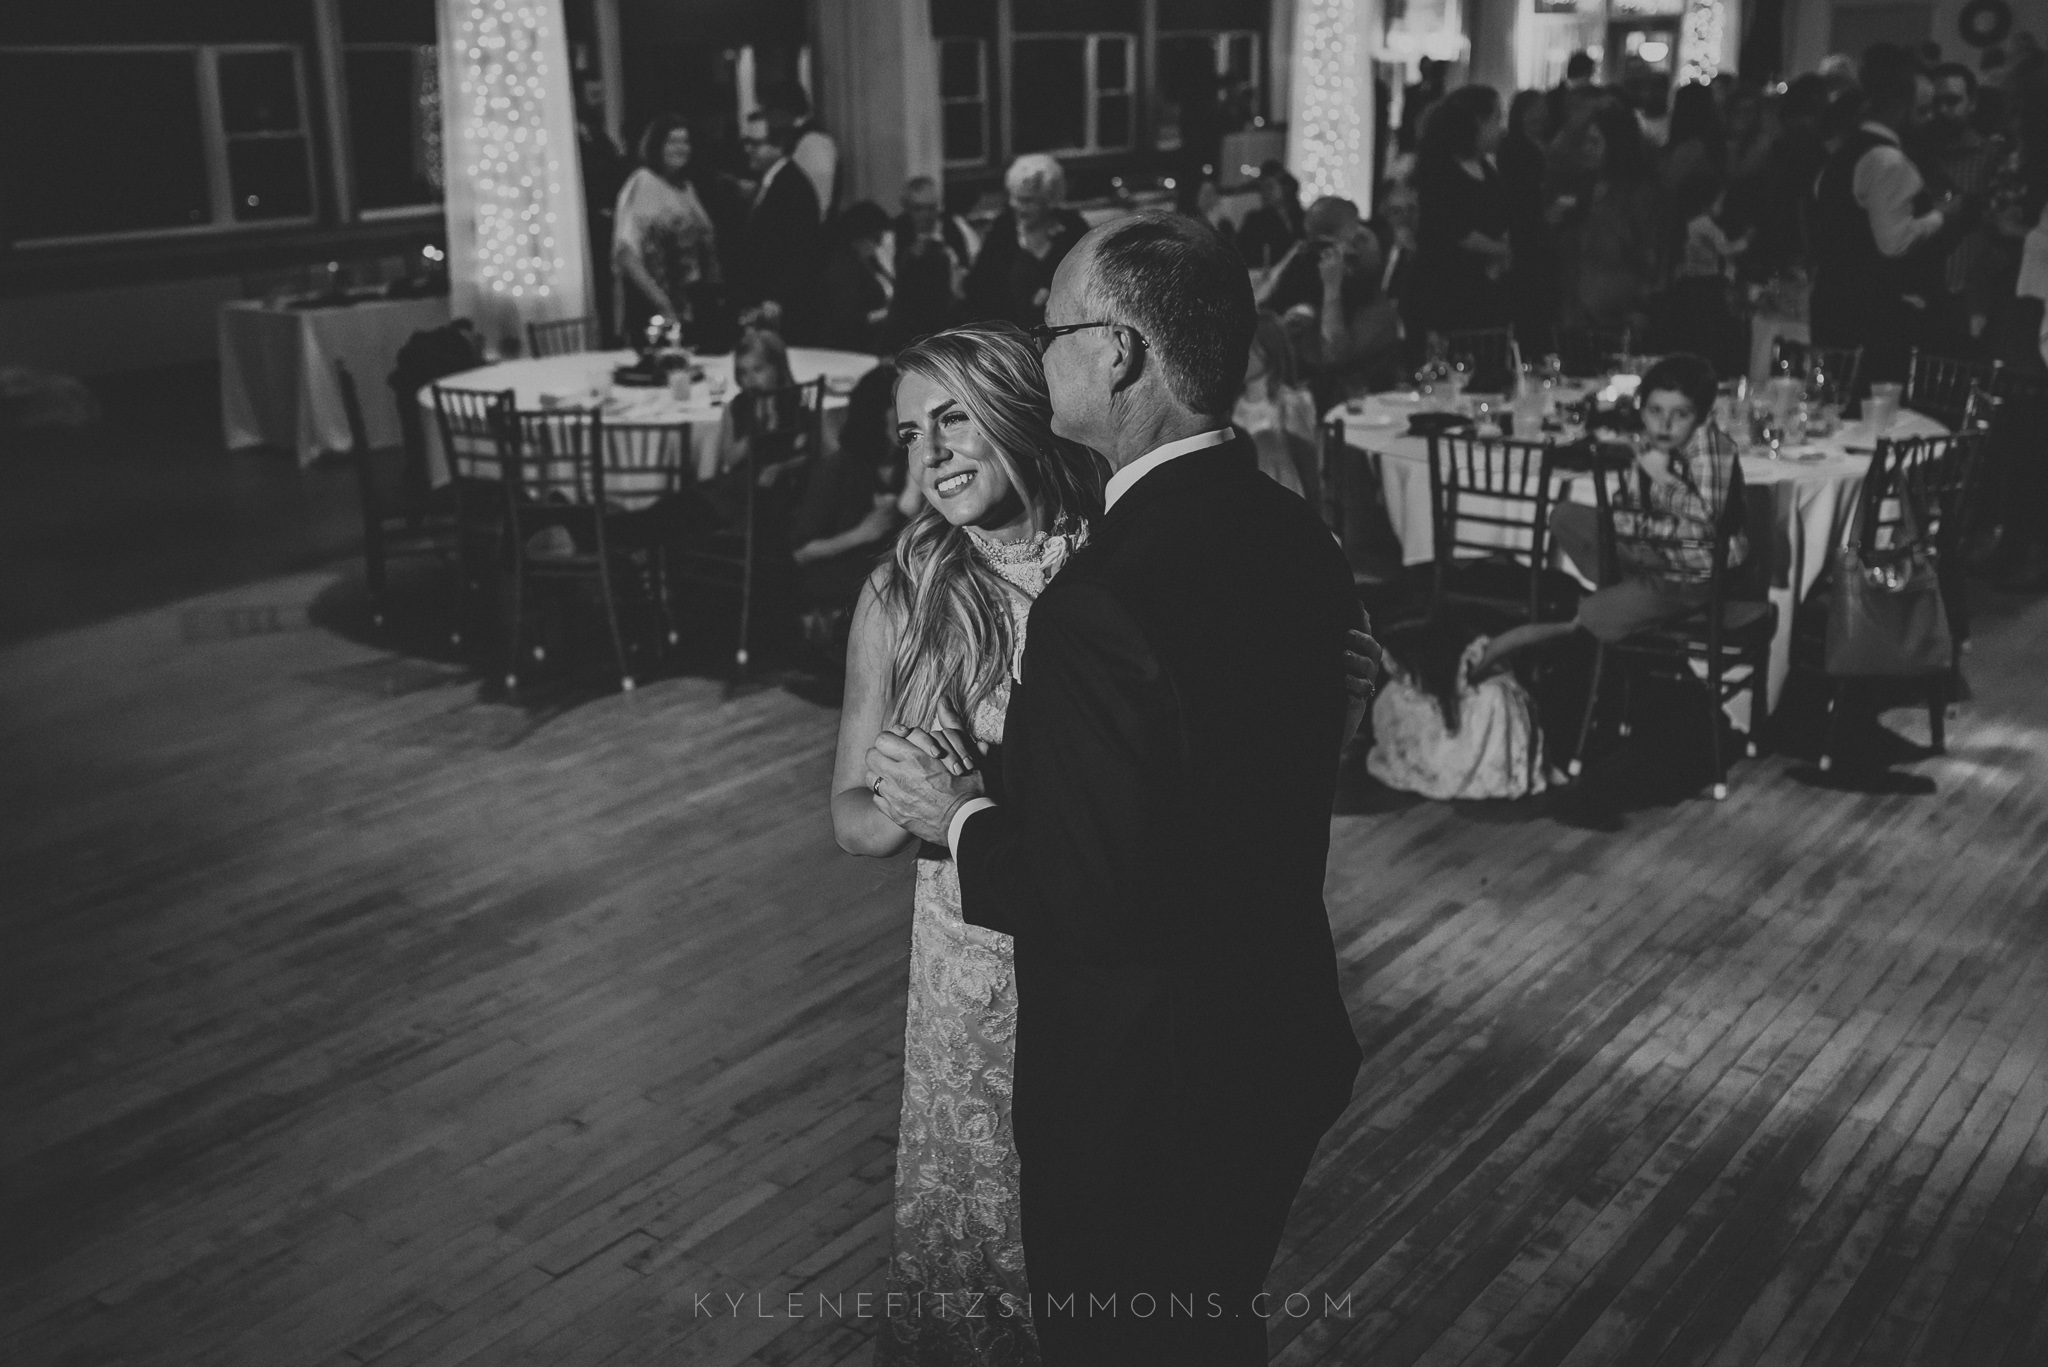 giannonatti-minnesota-winter-wedding-139.jpg